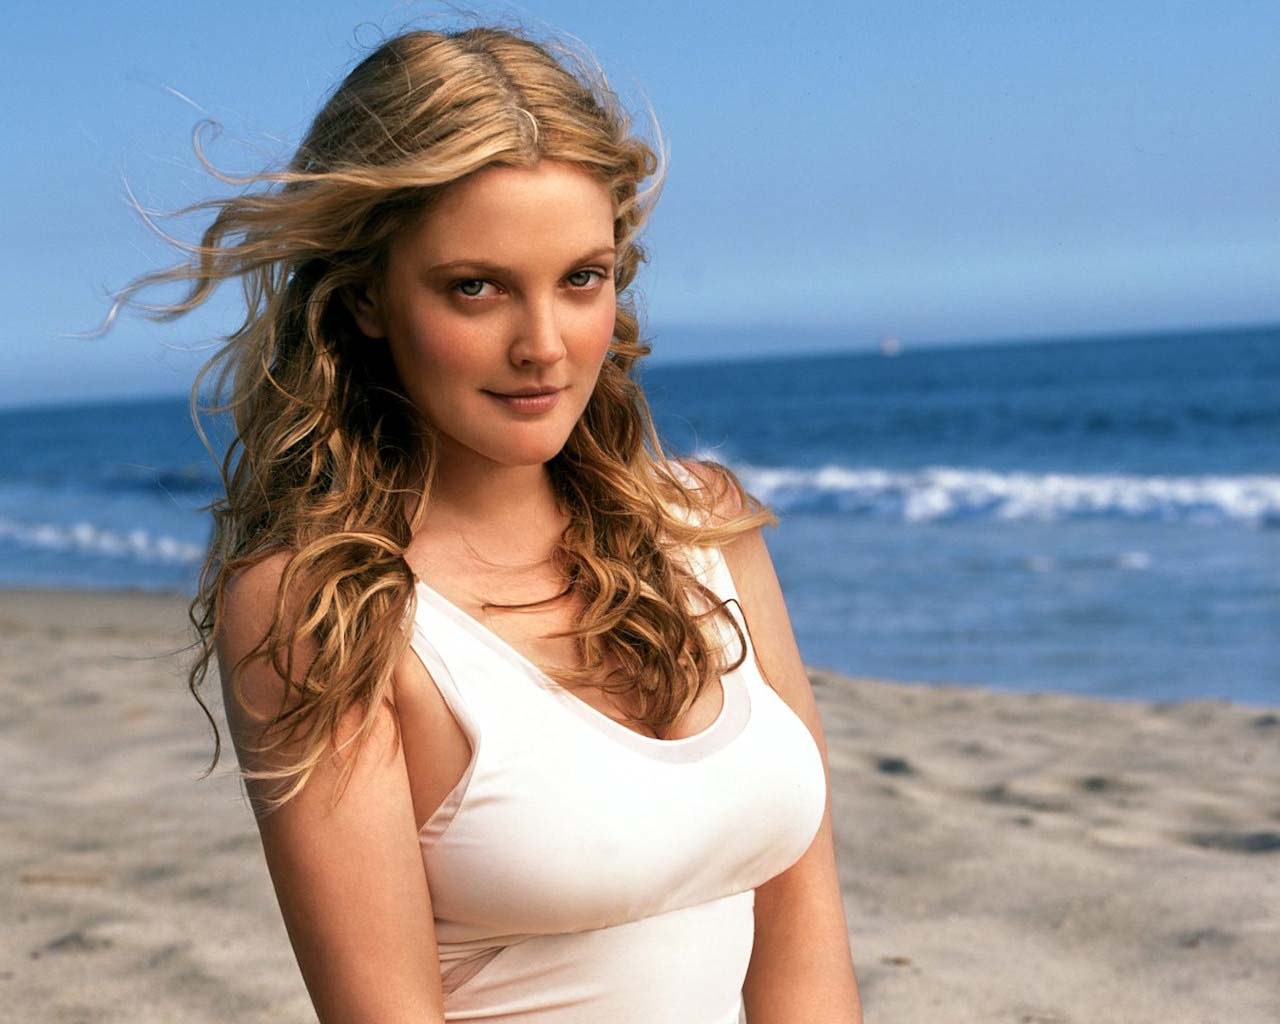 Hot Drew Barrymore top paid actress 2011 Top 10 Highest Paid Hollywood Female Actresses 2010   2011